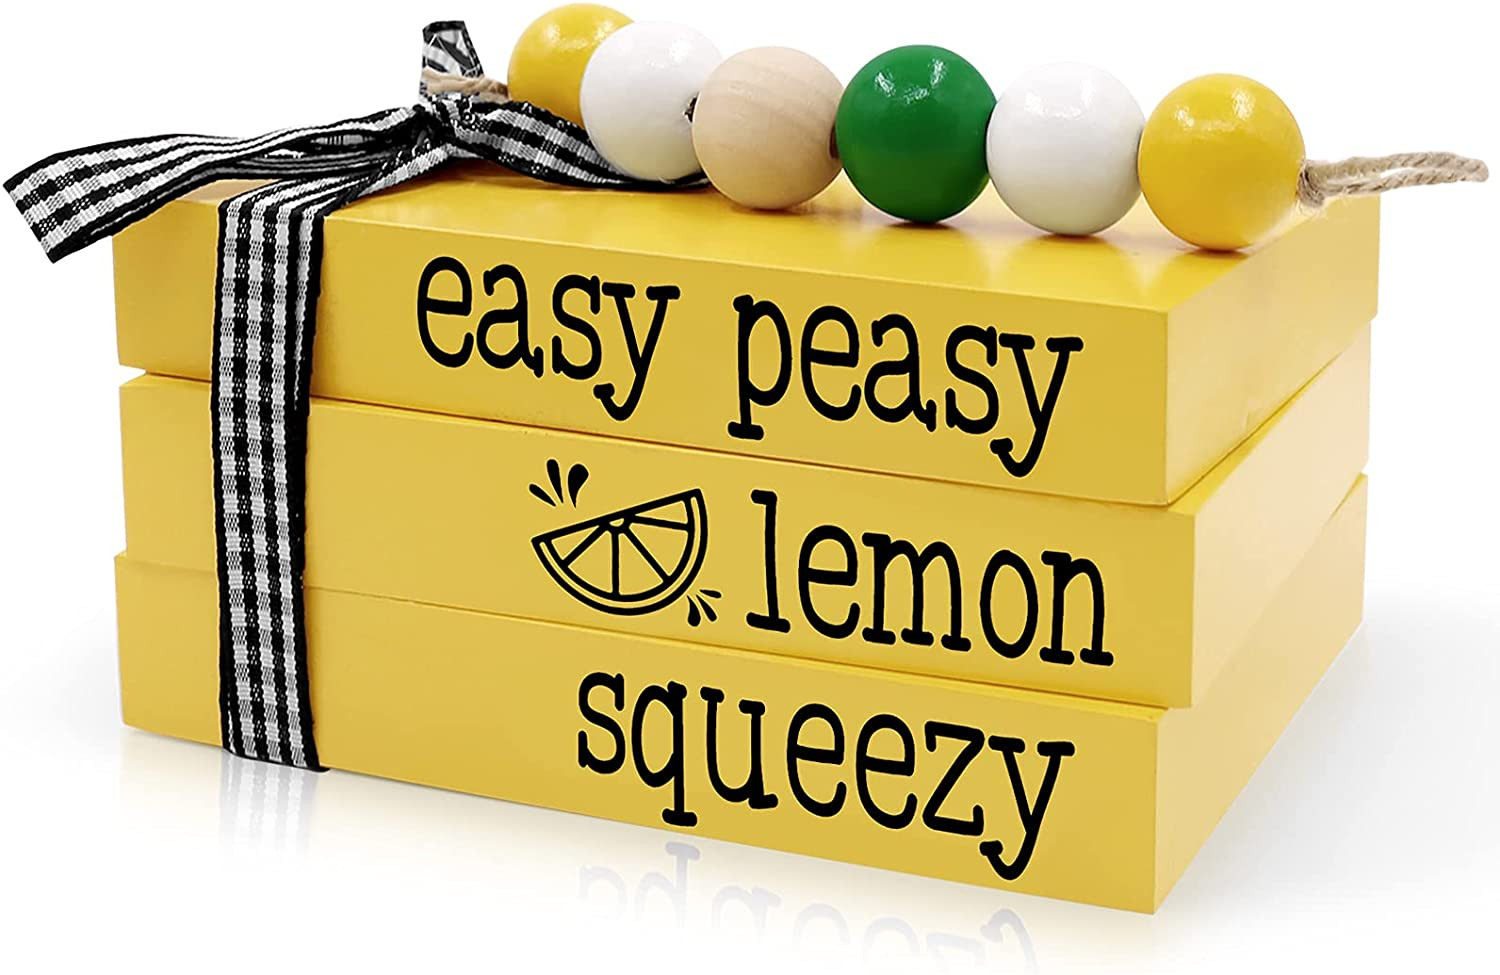 Huray Rayho Lemon Wooden Decorative Books Stack Easy Peasy Lemon Squeezy Tiered Tray Block Lemonade Summer Buffalo Plaid Farmhouse Faux 3D Book Stand Rustic Kitchen Home Decor Signs